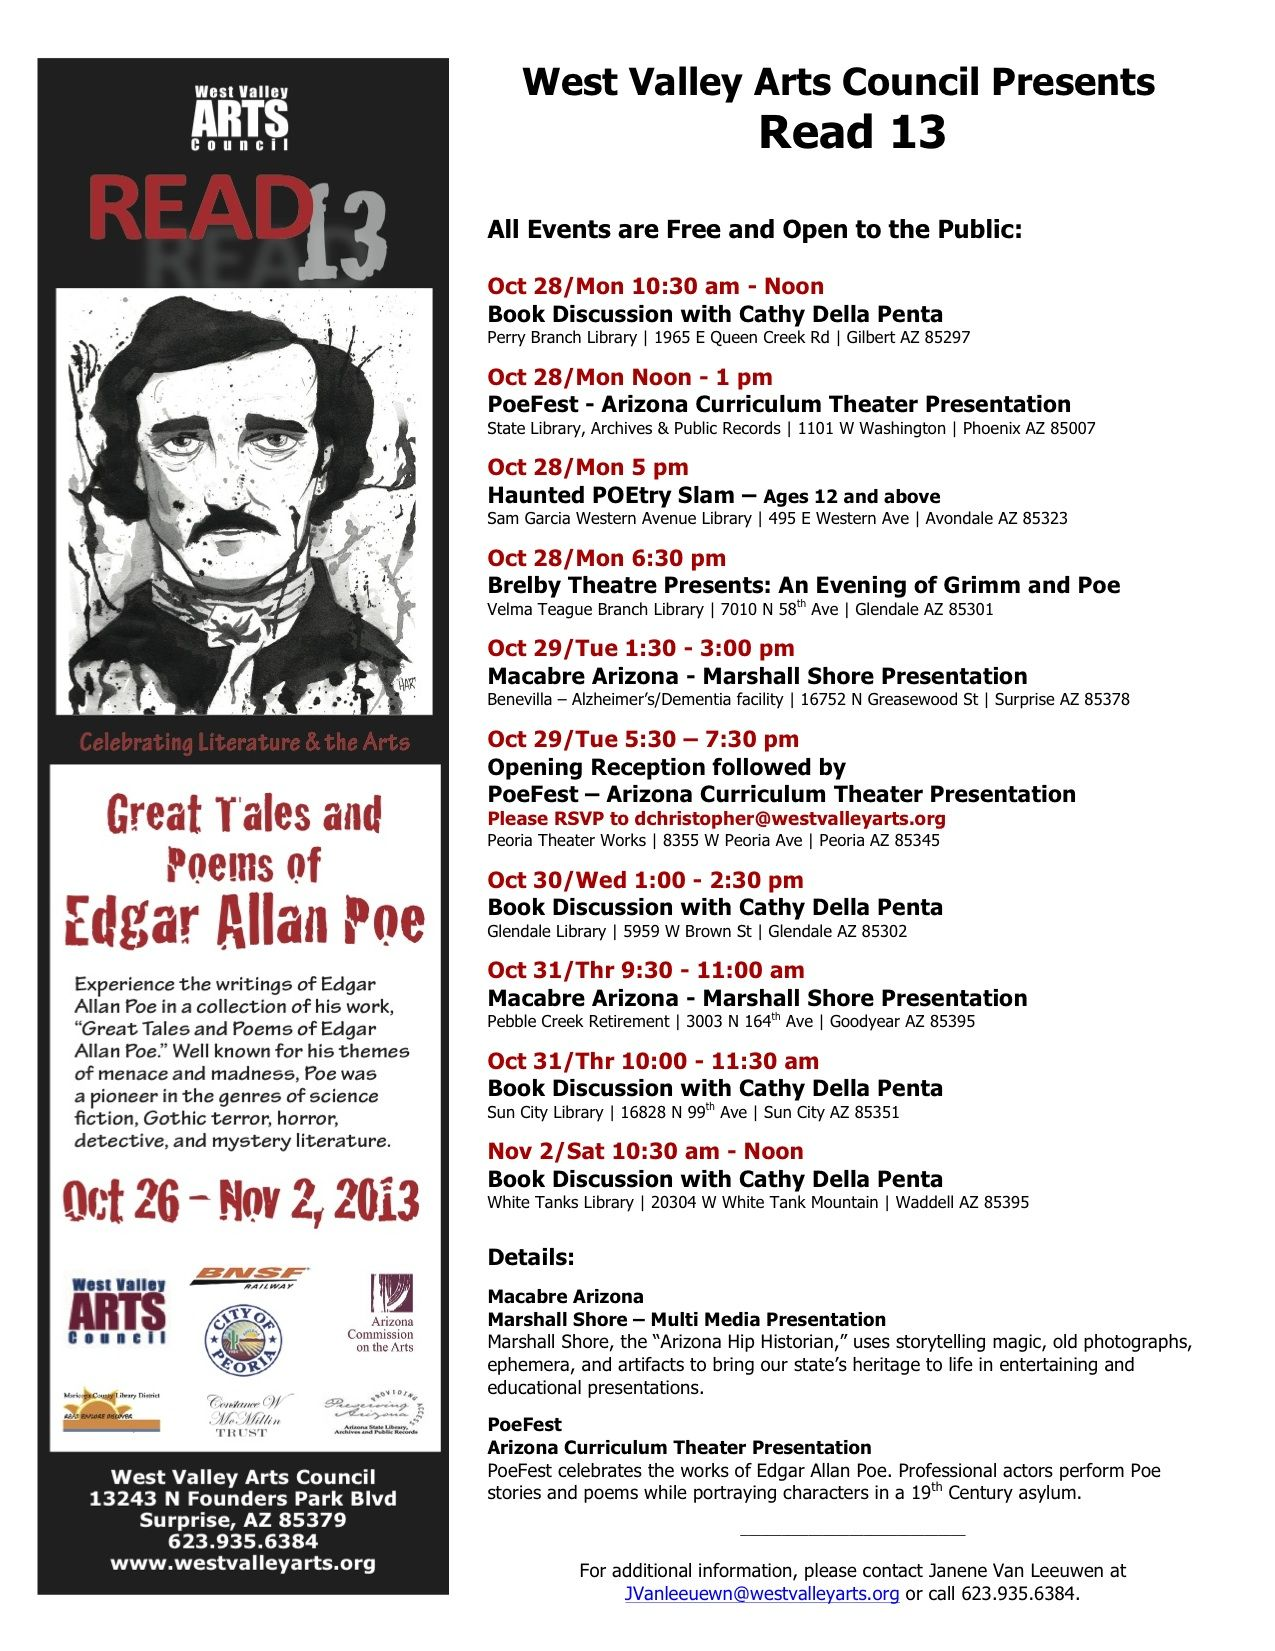 Updated list of WVAC's Read 13 Events: All events are free and open to the public. Contact West Valley Arts Council for more info. 623.935.6384